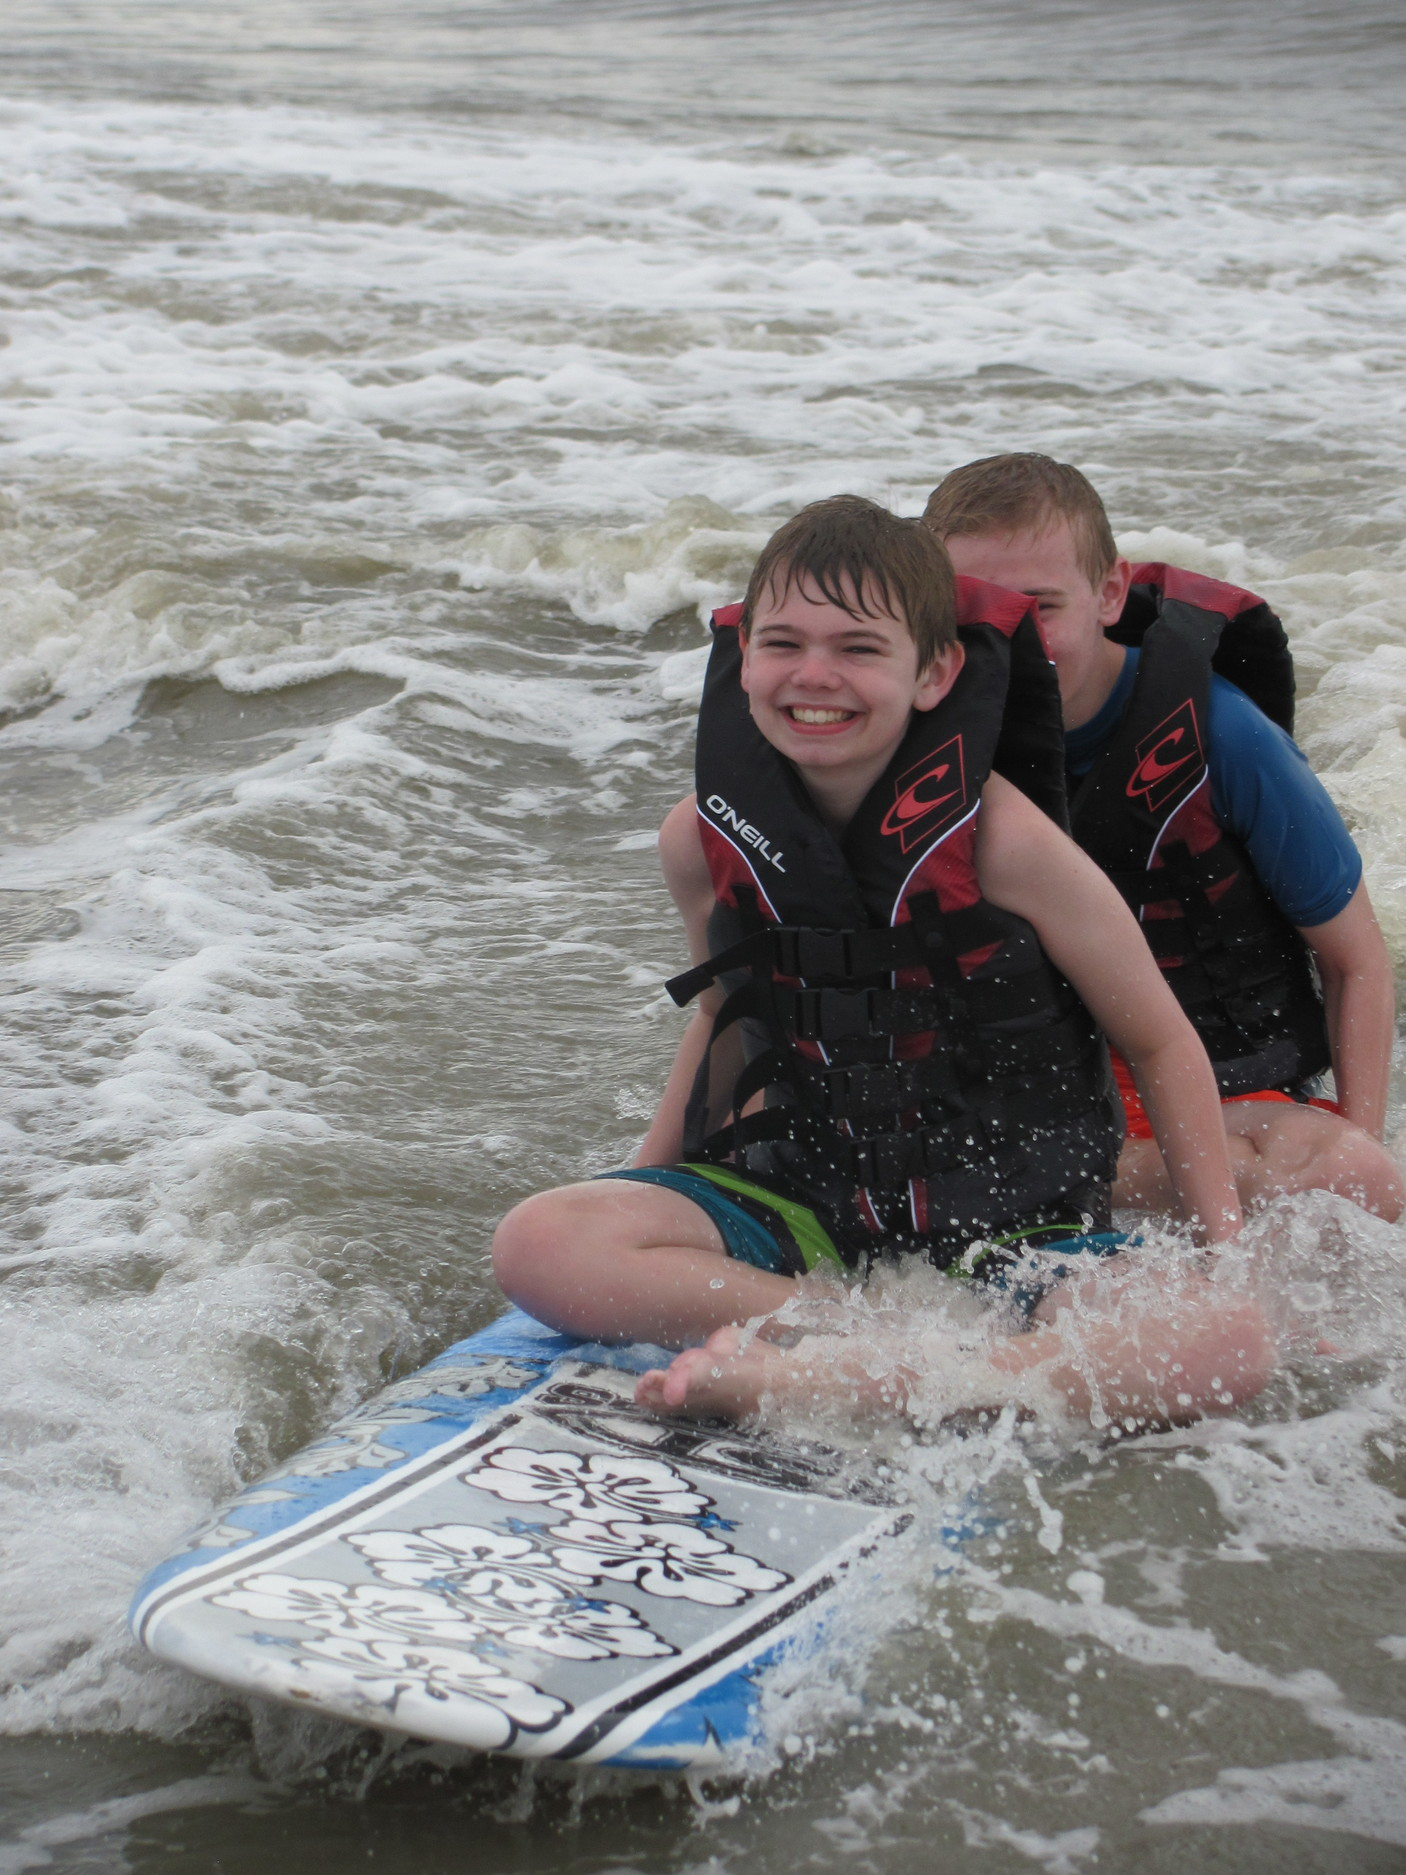 Two campers ride tandem on their surf board.